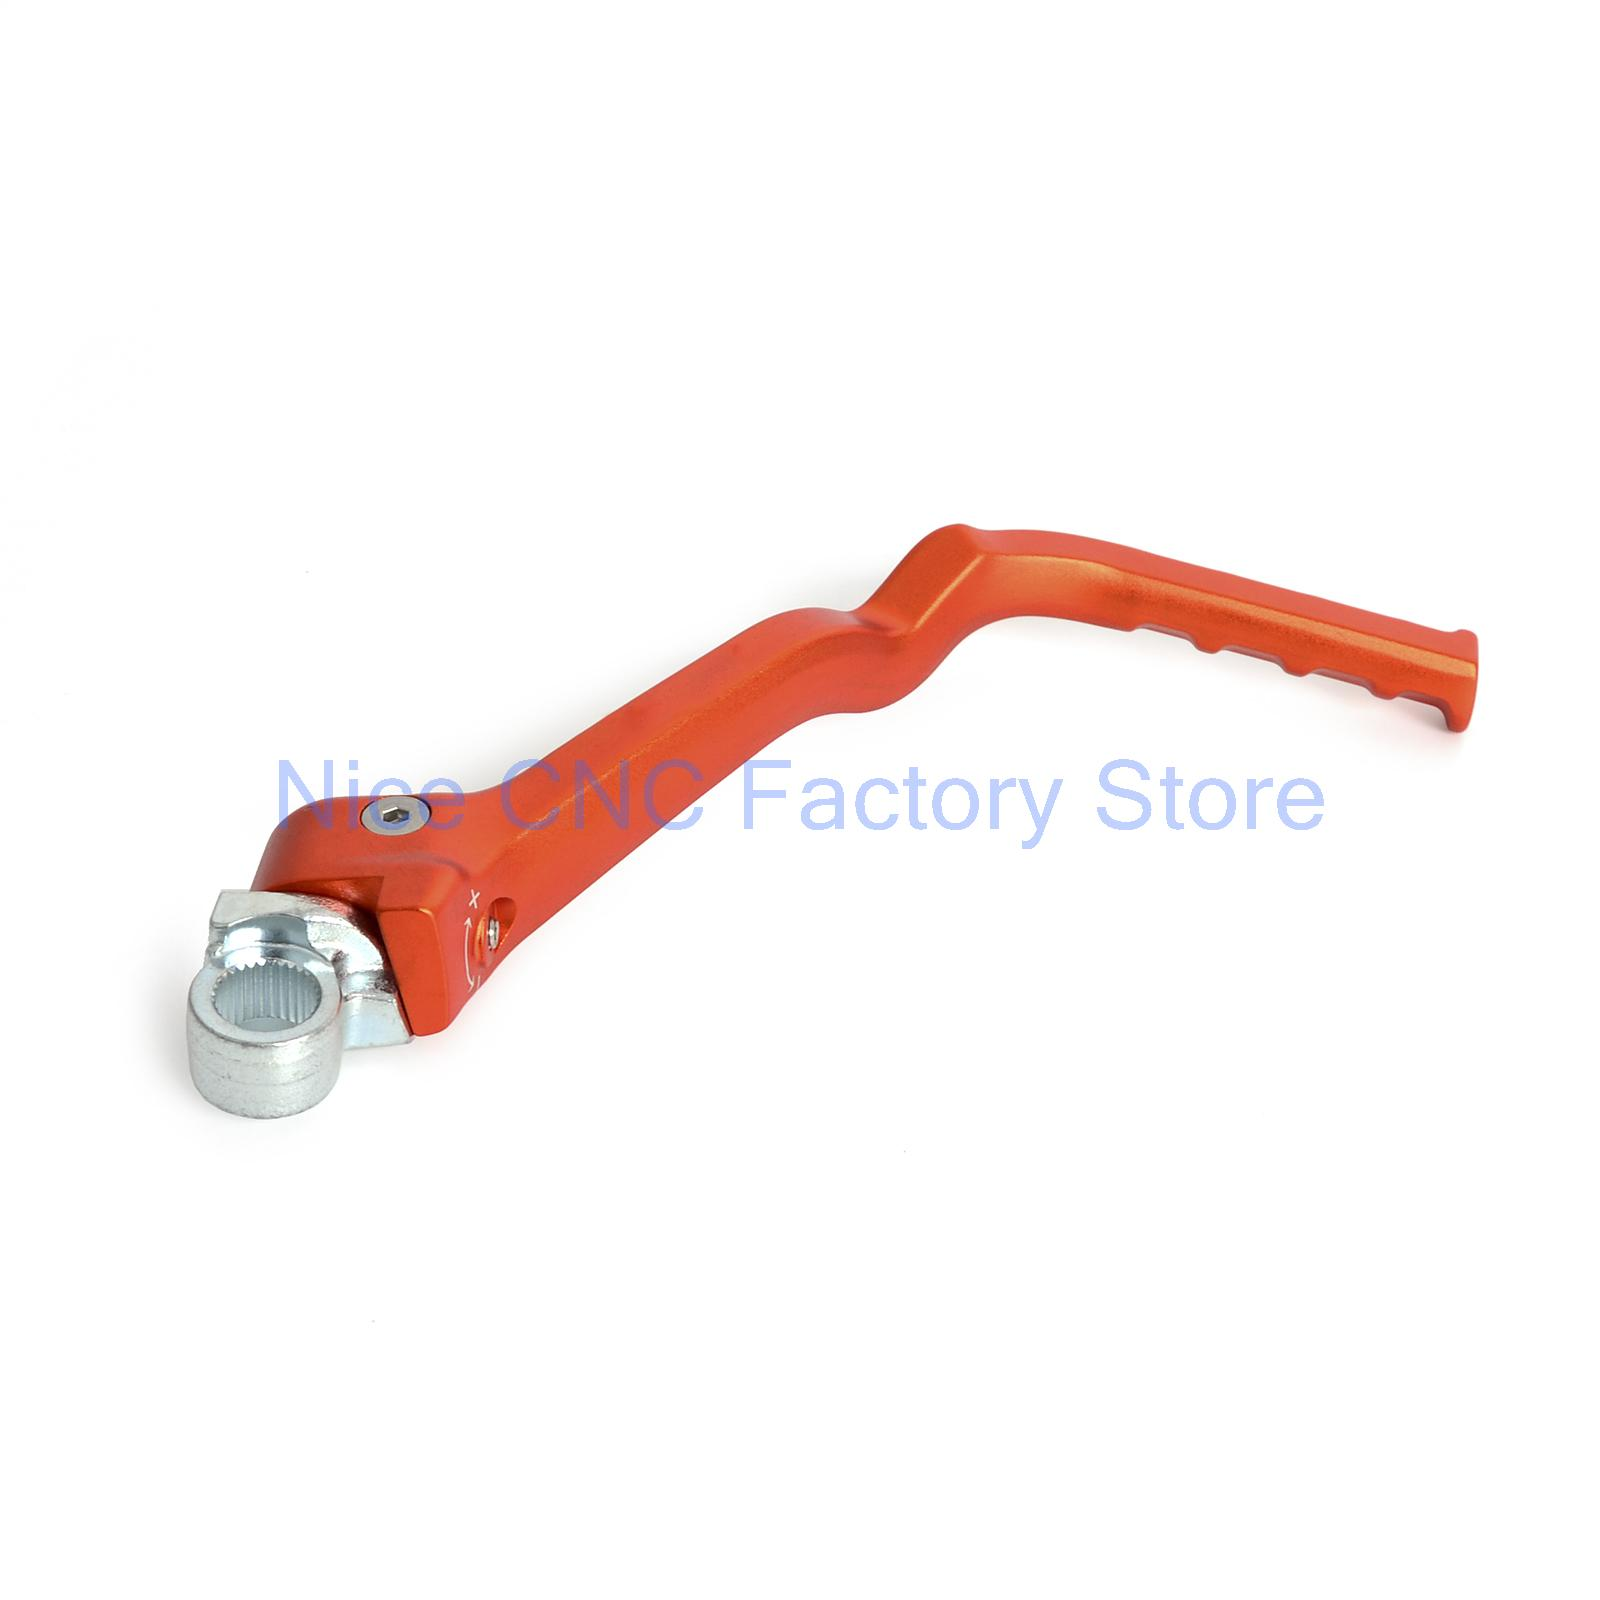 Forged Kick Start Lever for KTM 250 300 350 450 500 SX/XC/XCF/XCW/EXC/XCF-W/SX-F/XC-F  Husaberg TE250 TE300 TC250 orange cnc billet factory oil filter cover for ktm sx exc xc f xcf w 250 400 450 520 525 540 950 990